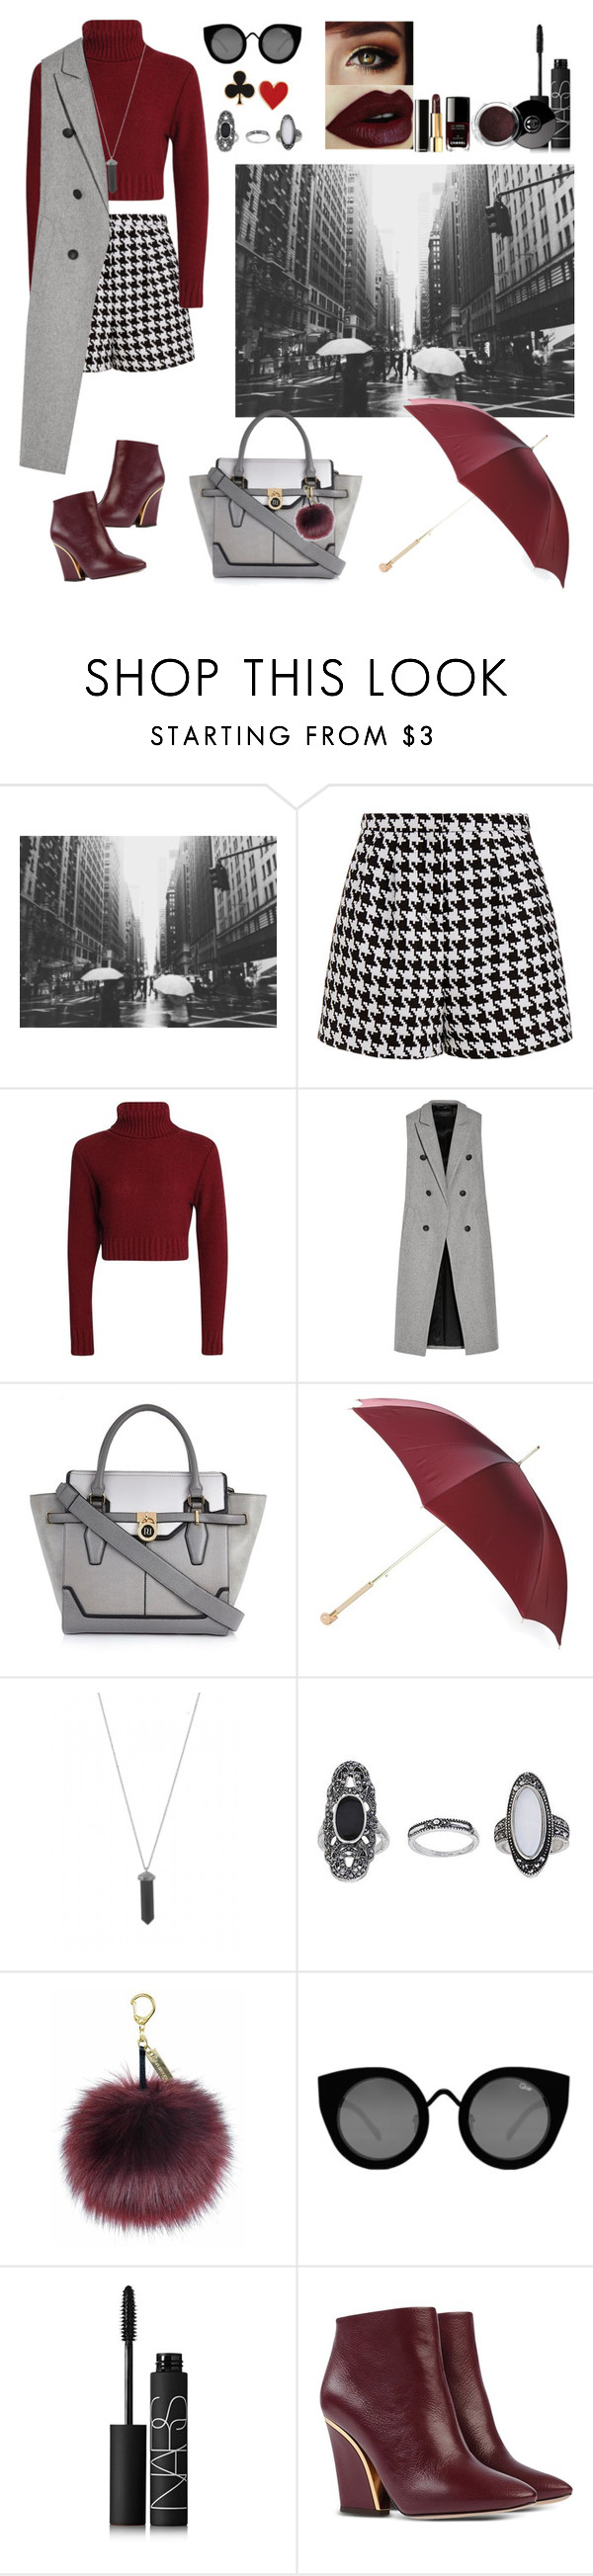 """citywalk"" by yuisatrio ❤ liked on Polyvore featuring Emma Cook, rag & bone, River Island, Alexander McQueen, Karen Kane, Topshop, Quay, NARS Cosmetics, Chloé and Chanel"